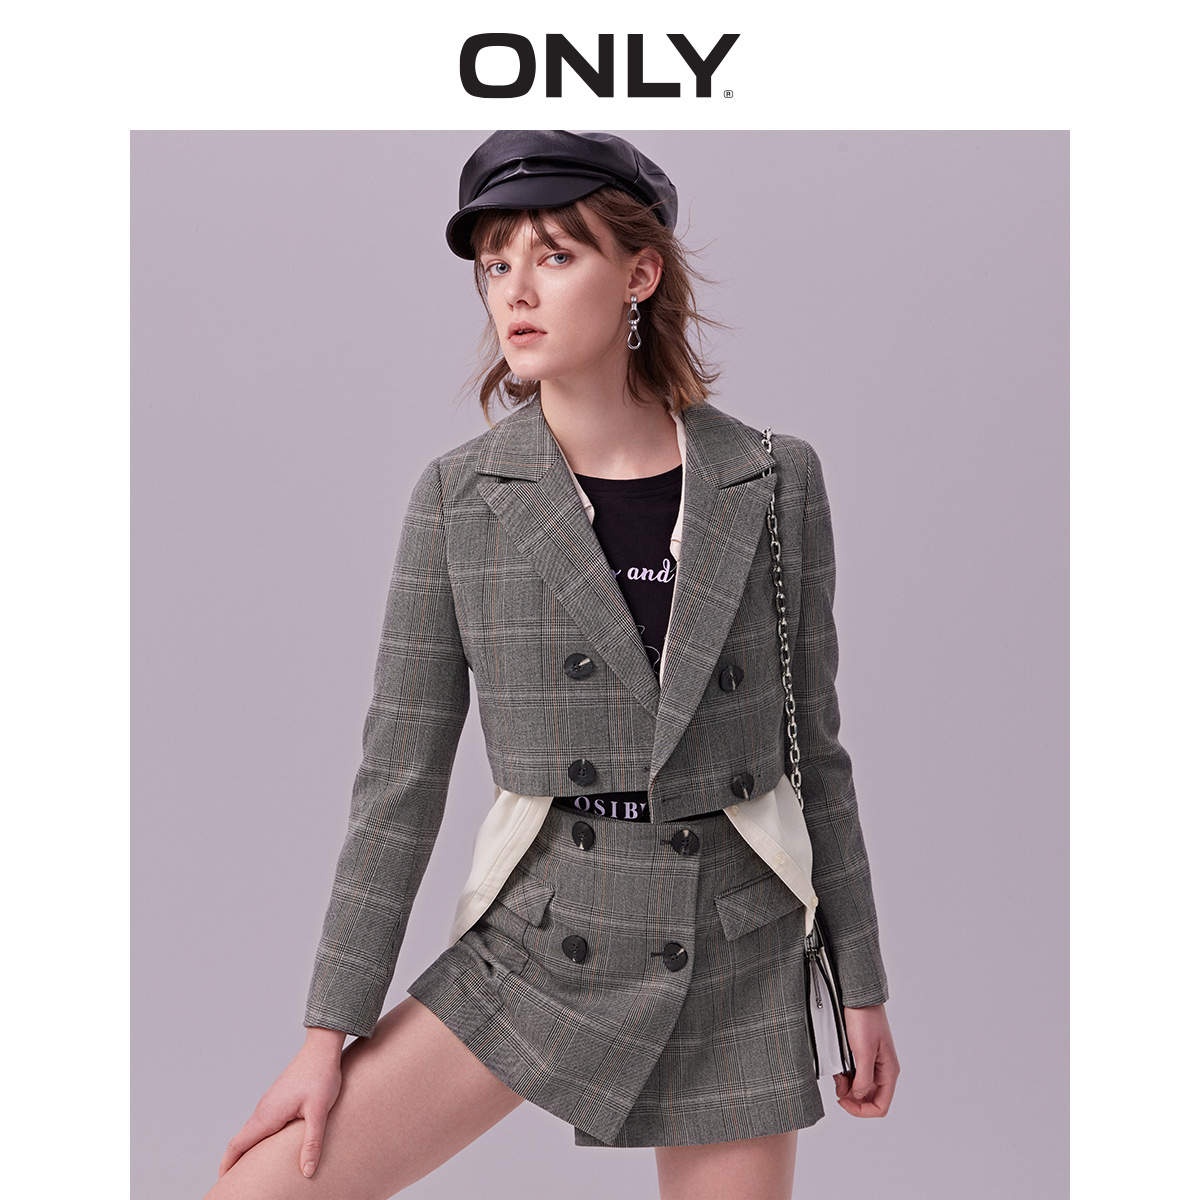 ONLY 2019 Spring Summer New Women's Short Leisure Blazer |119108530